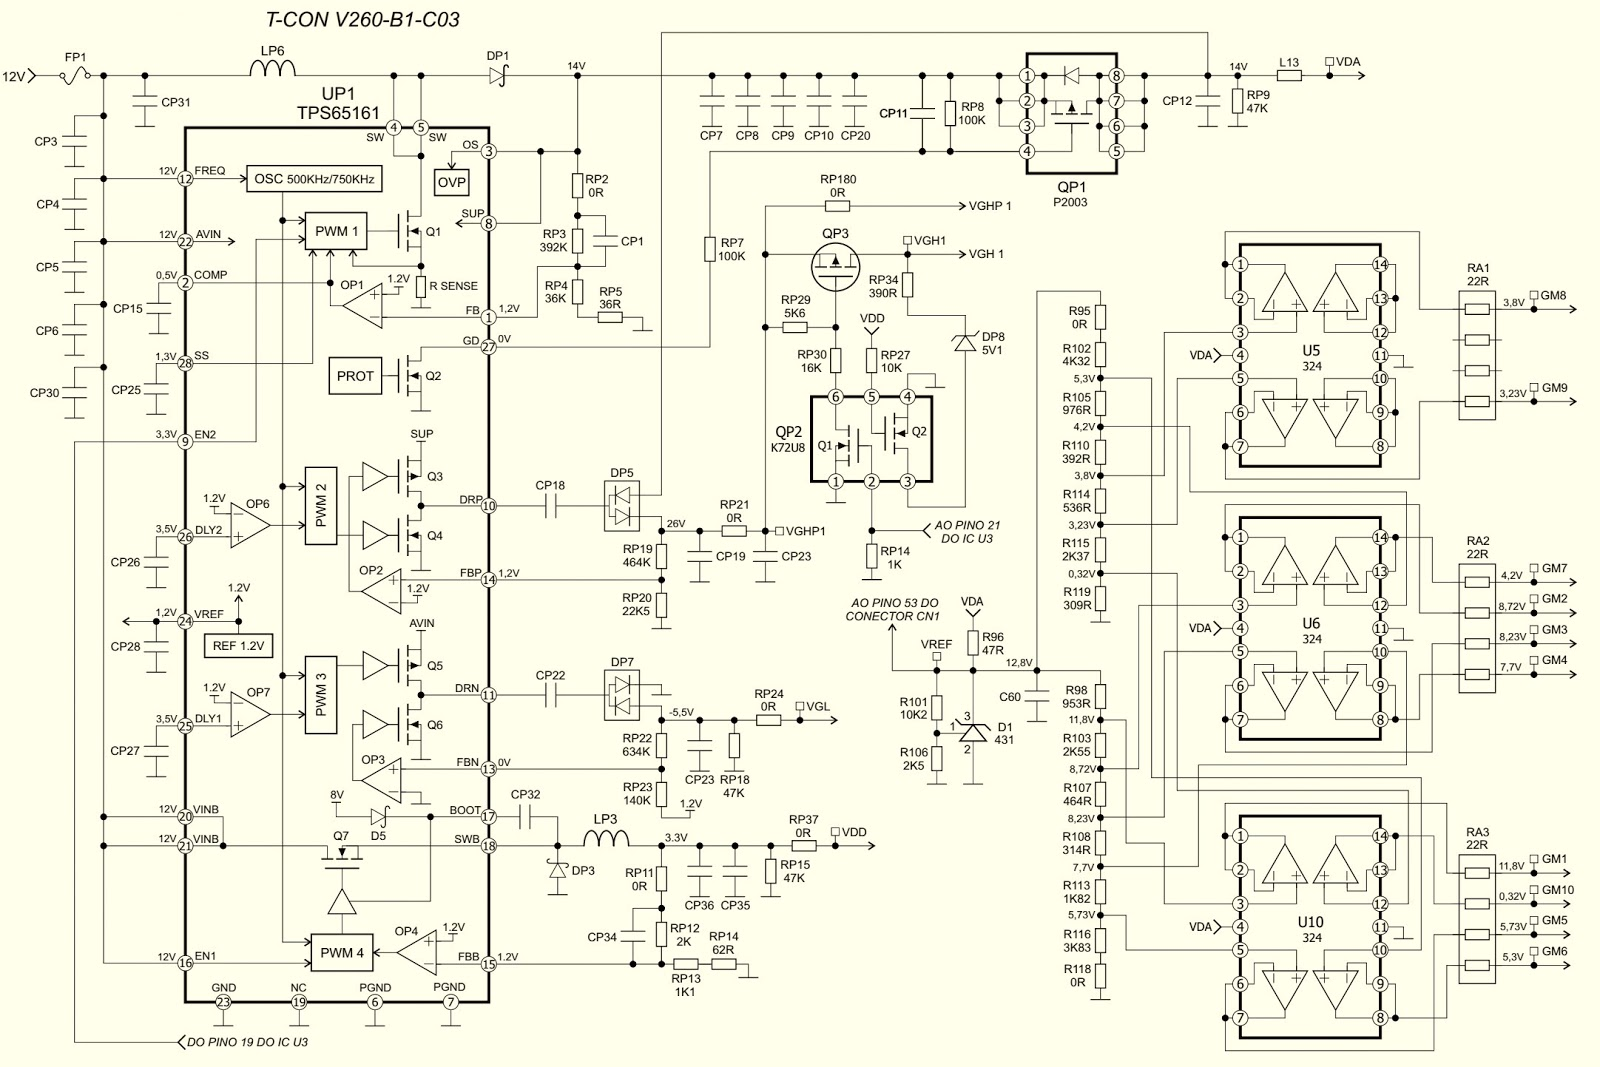 small resolution of lg 26lc55 lcd tv t con board v260 b1 c03 circuit diagram led tv schematic tcon board schematic or